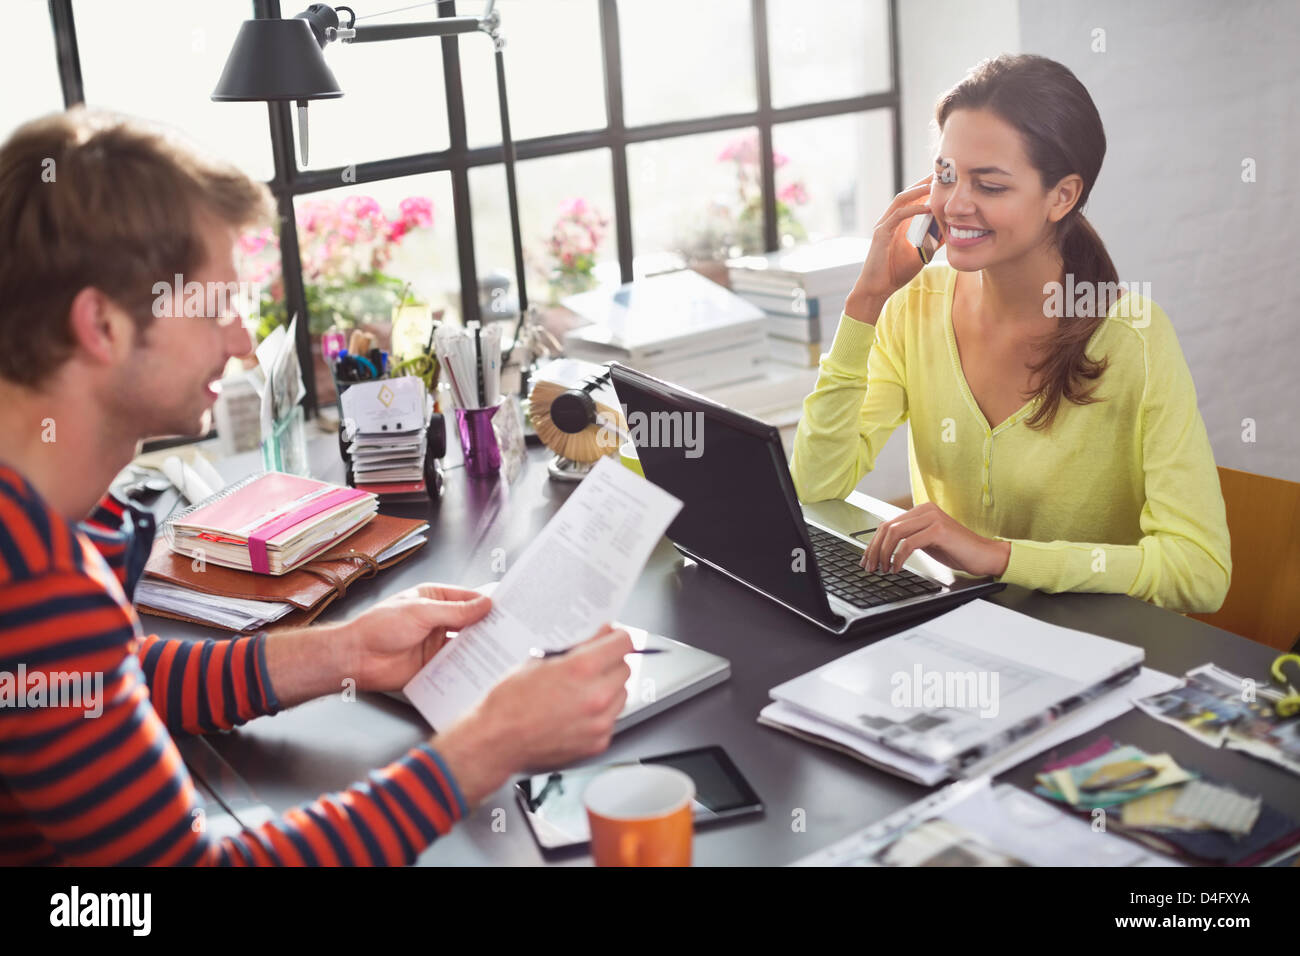 Couple working together at desk - Stock Image